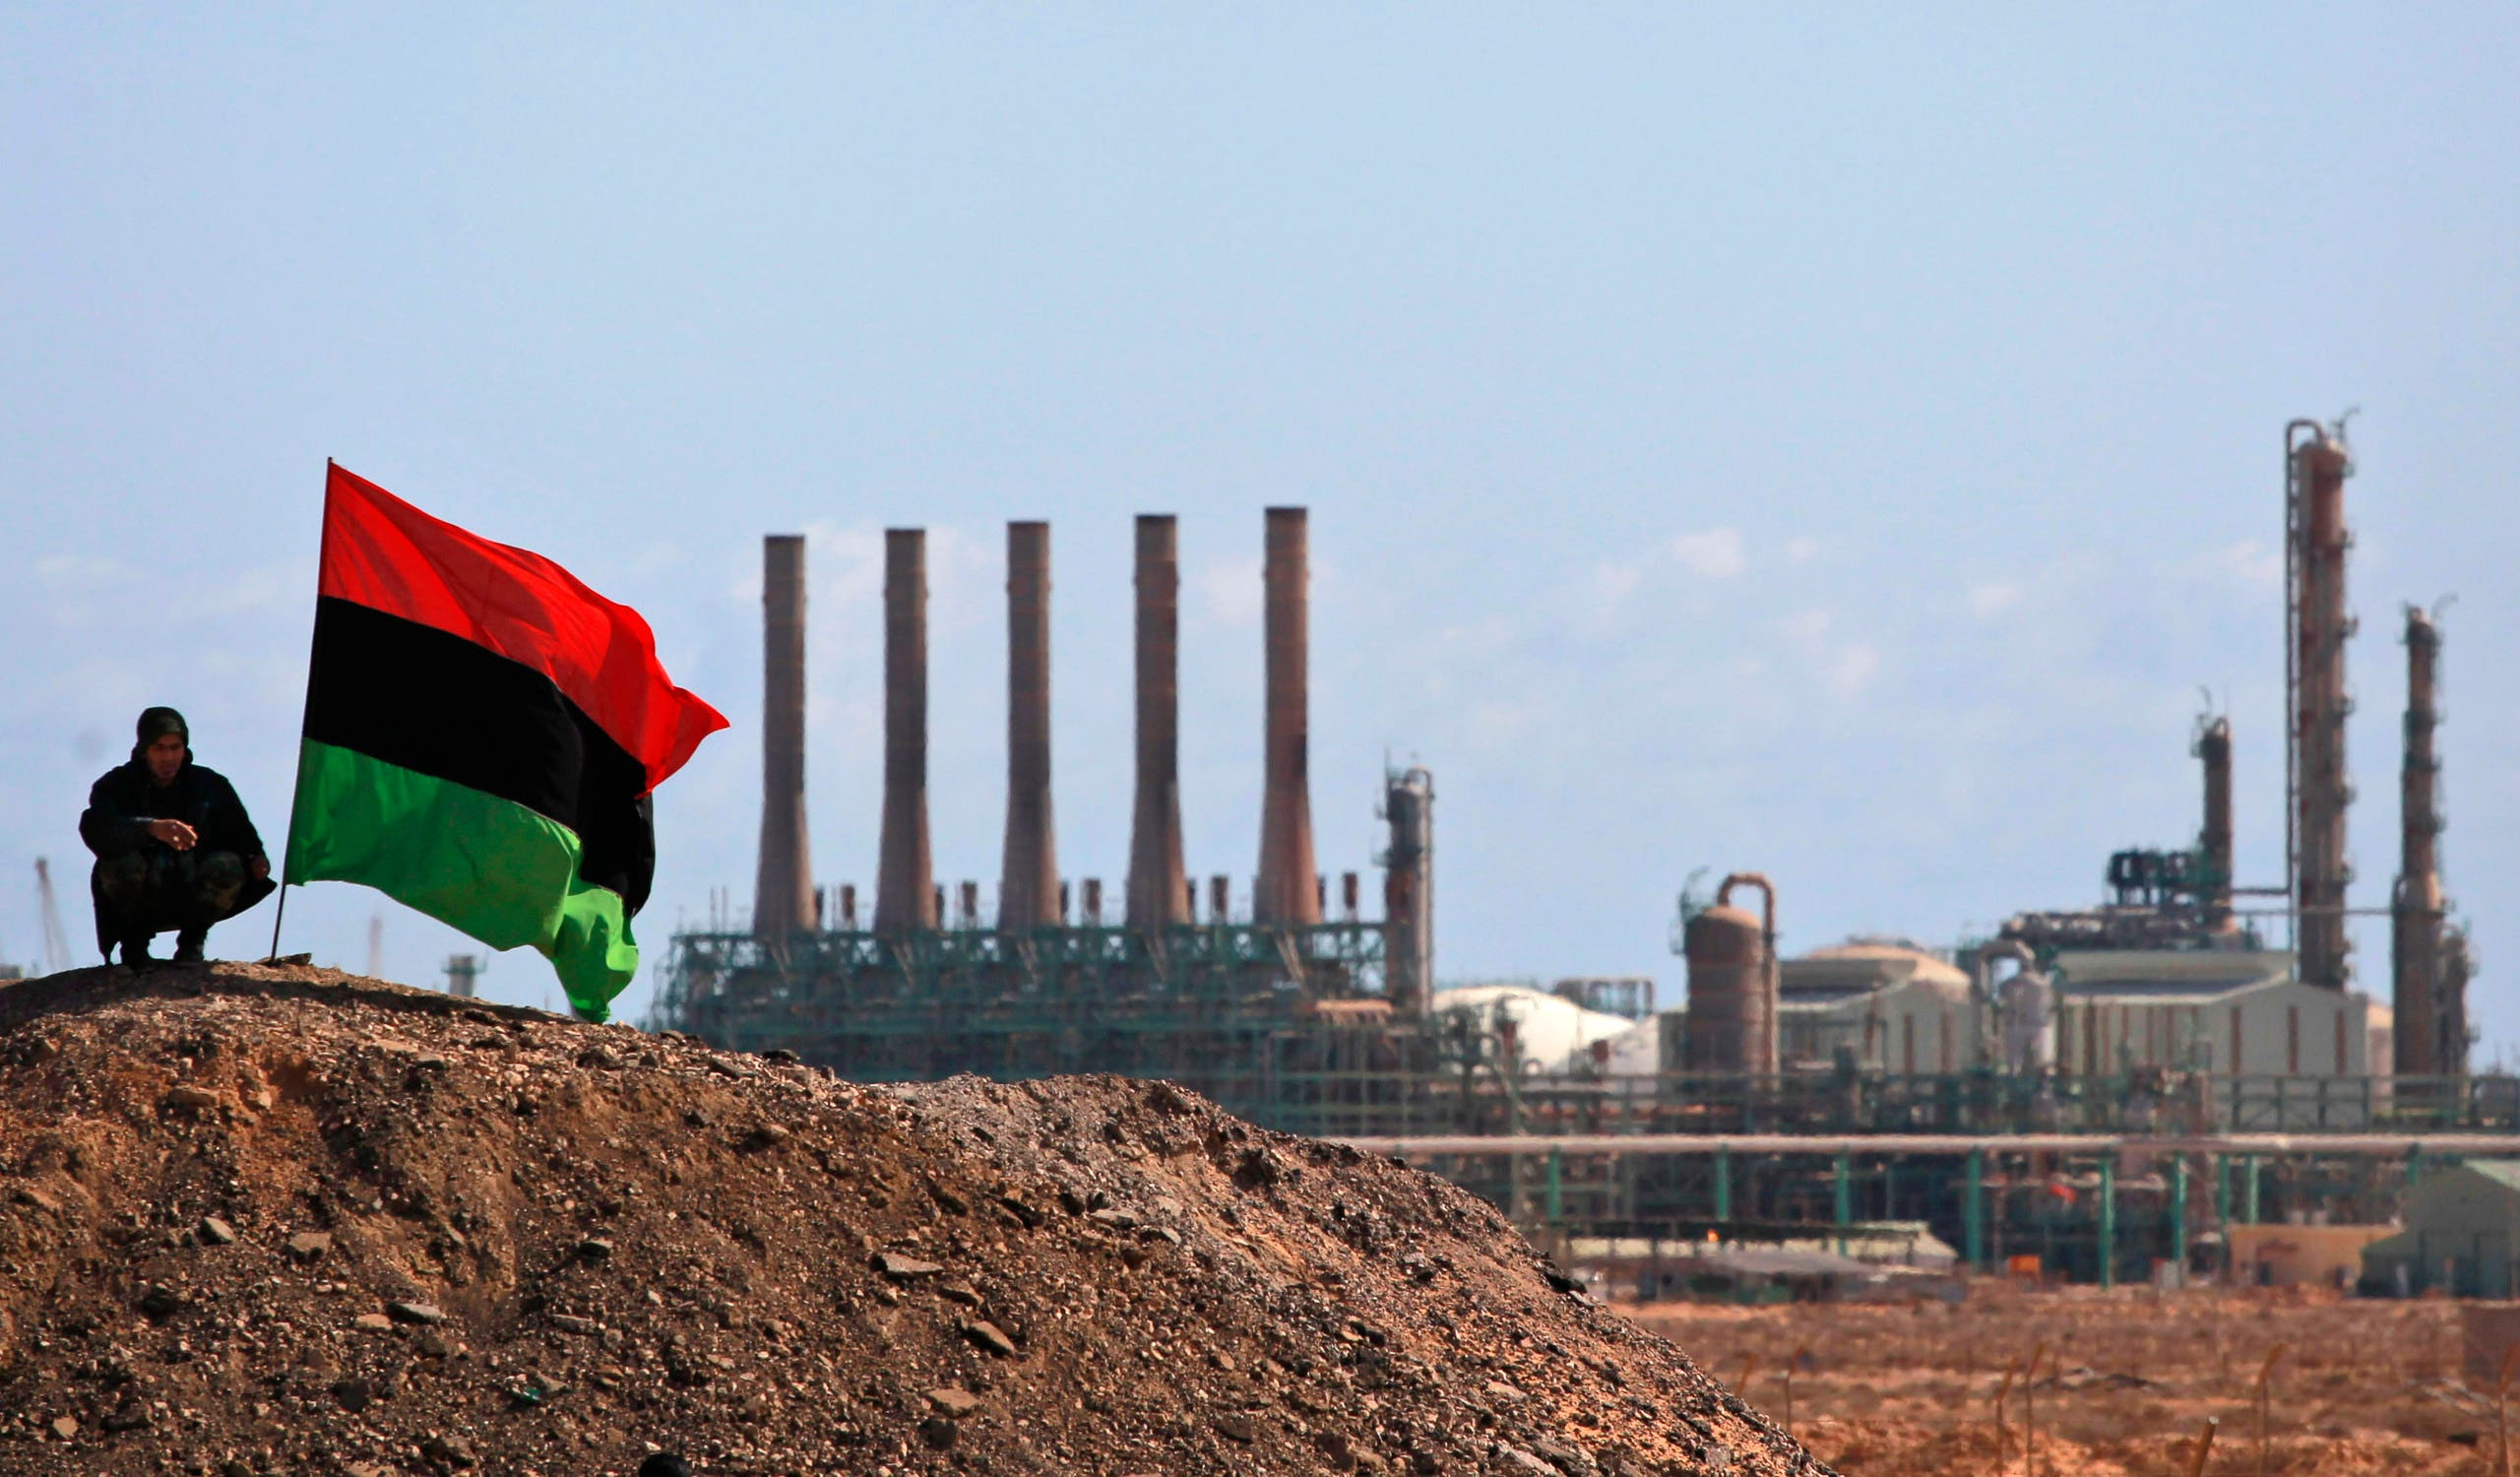 A Libyan rebel who is part of the forces against Libyan leader Moammar Gadhafi sits next to a pre-Gadhafi flag as he guards outside the refinery in Ras Lanuf, eastern Libya. (File Photo: Reuters)